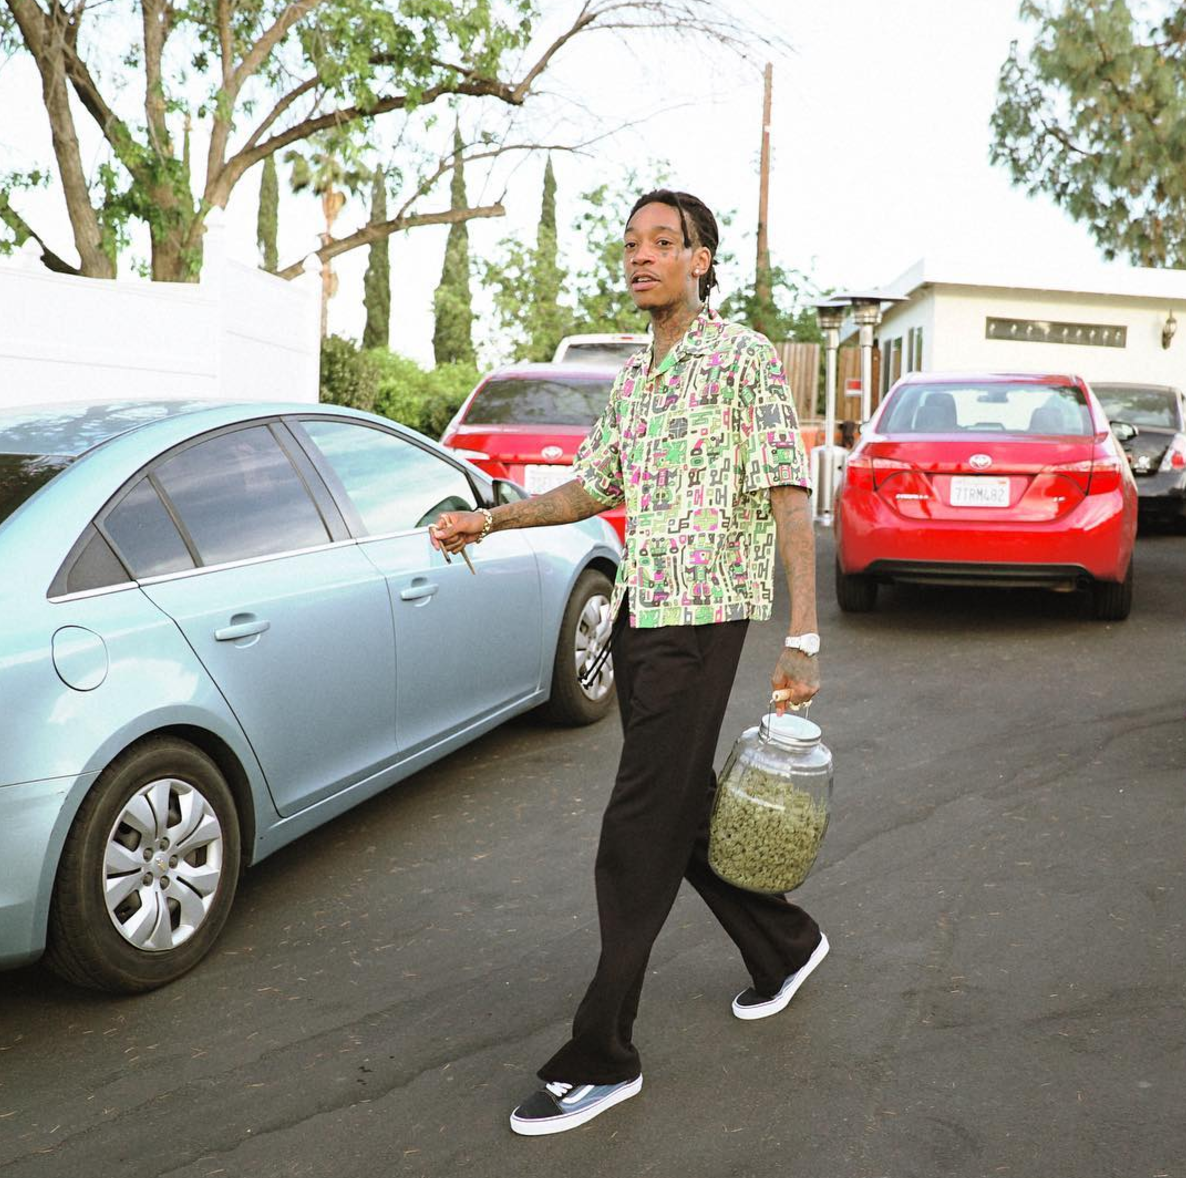 SPOTTED: Wiz Khalifa In Green Shirt And Old Skool Vans